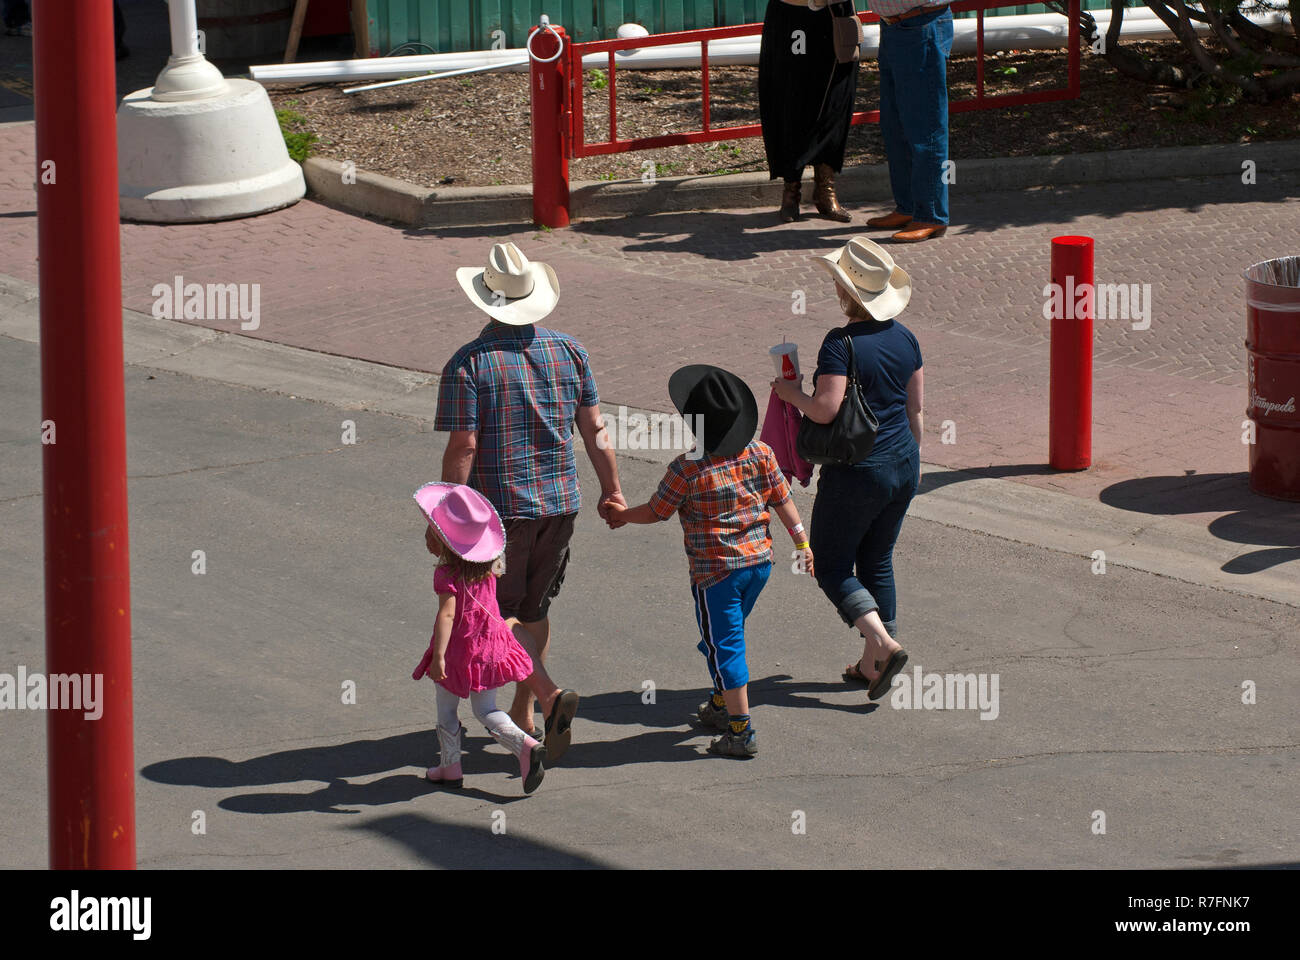 A family walking in Stampede Park during Calgary Stampede show, Calgary, Alberta, Canada - Stock Image